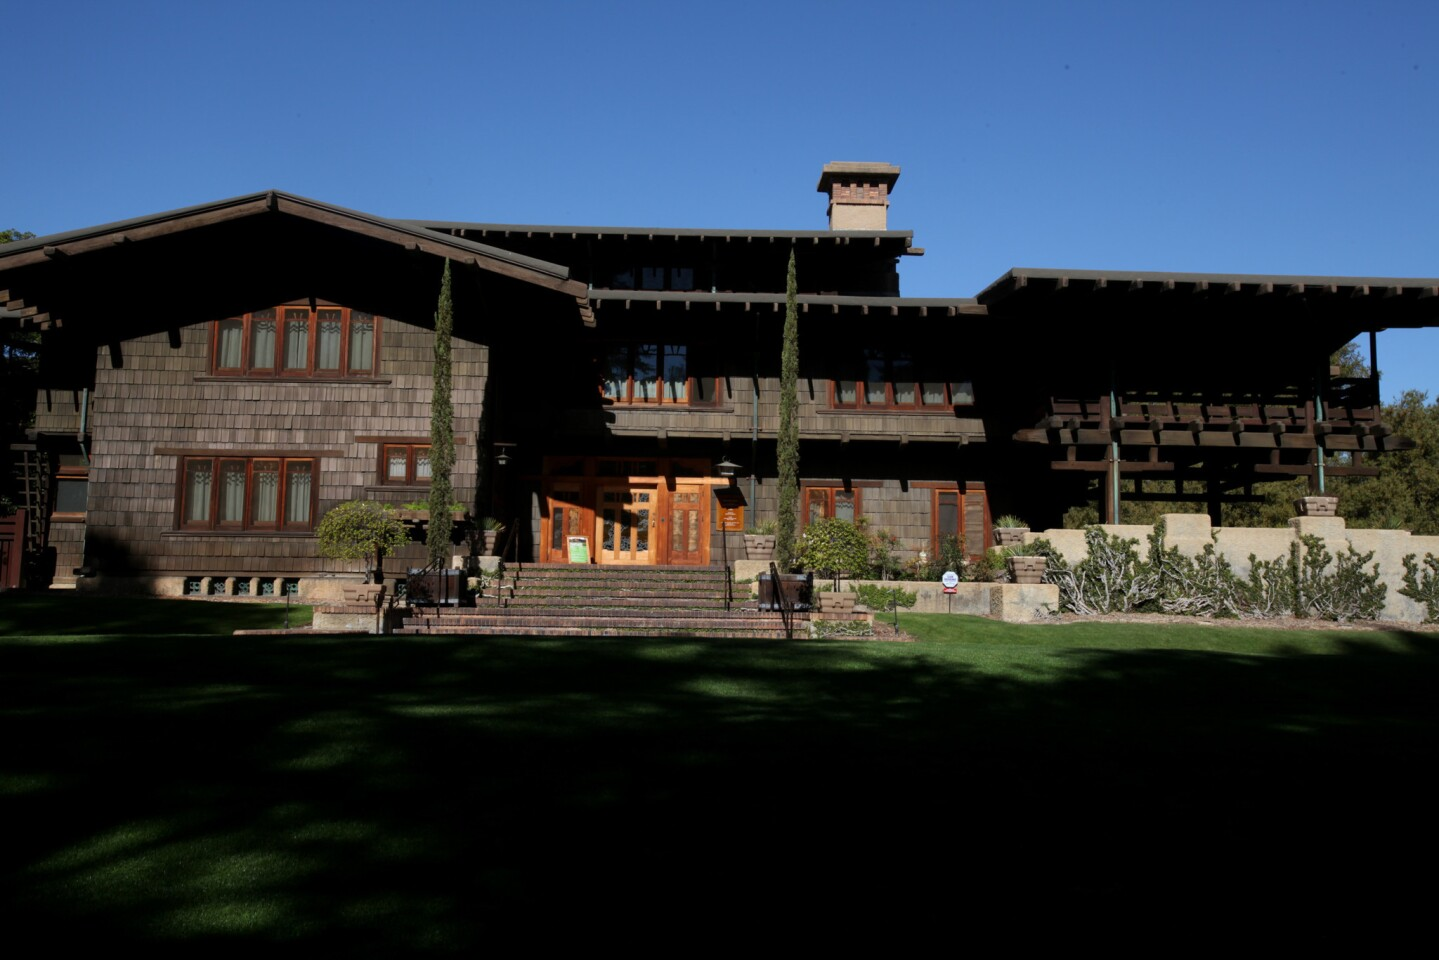 """The Gamble House in Pasadena, a Craftsman masterpiece designed by architects Greene & Greene, is offering """"Upstairs Downstairs"""" tours of servants' quarters July 30-Aug. 16."""